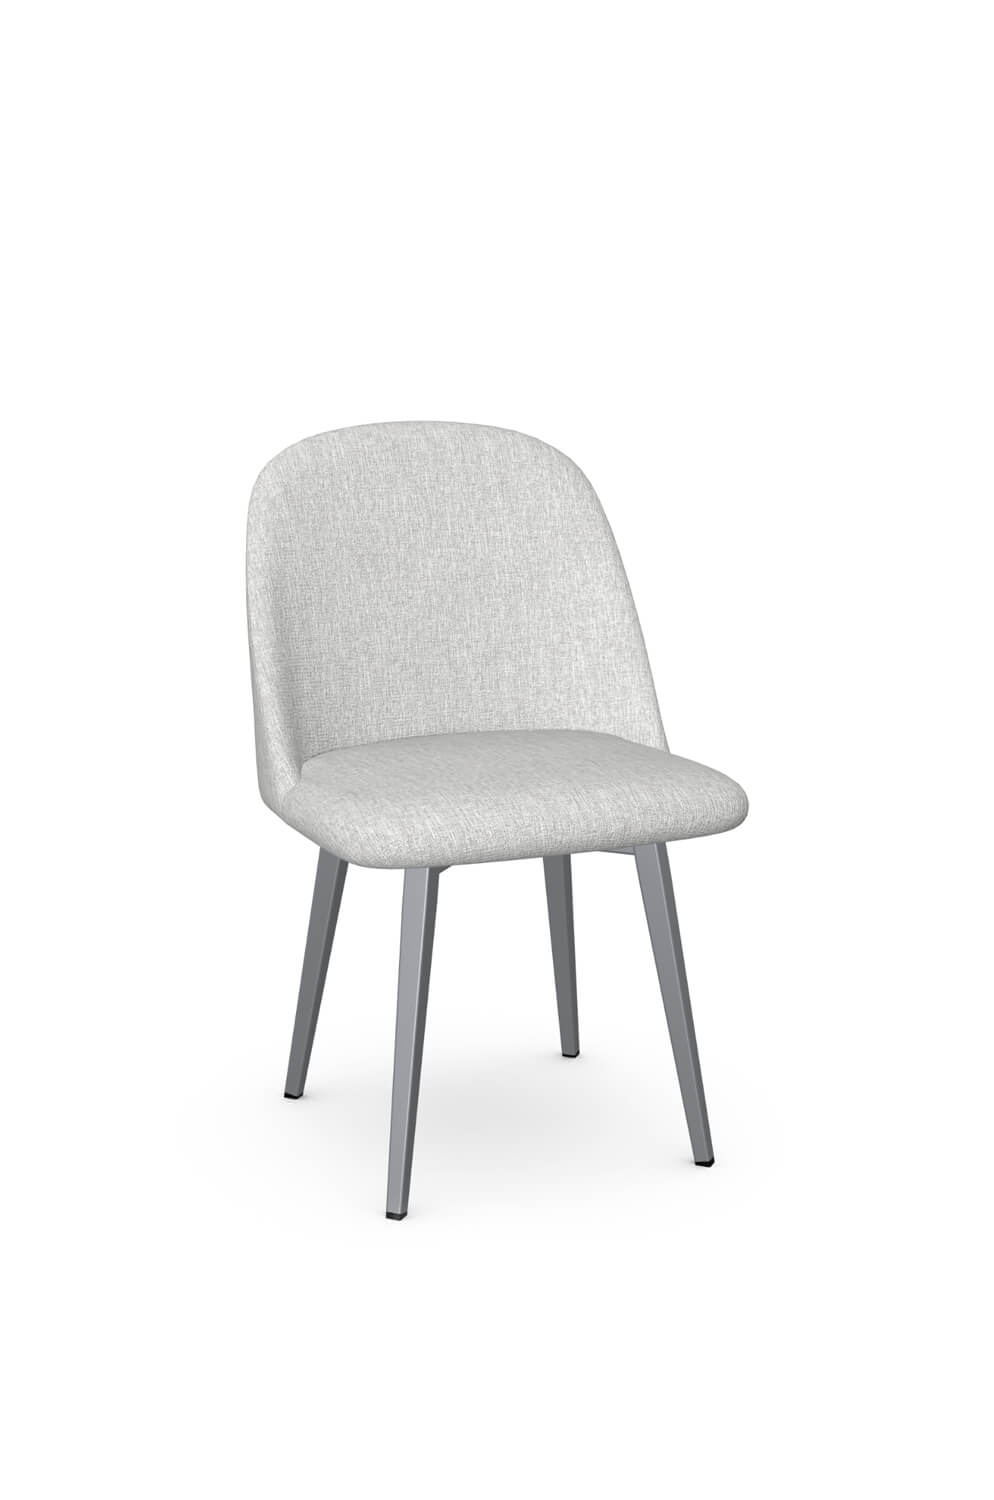 Amisco's Zahra Upholstered Modern Dining Chair